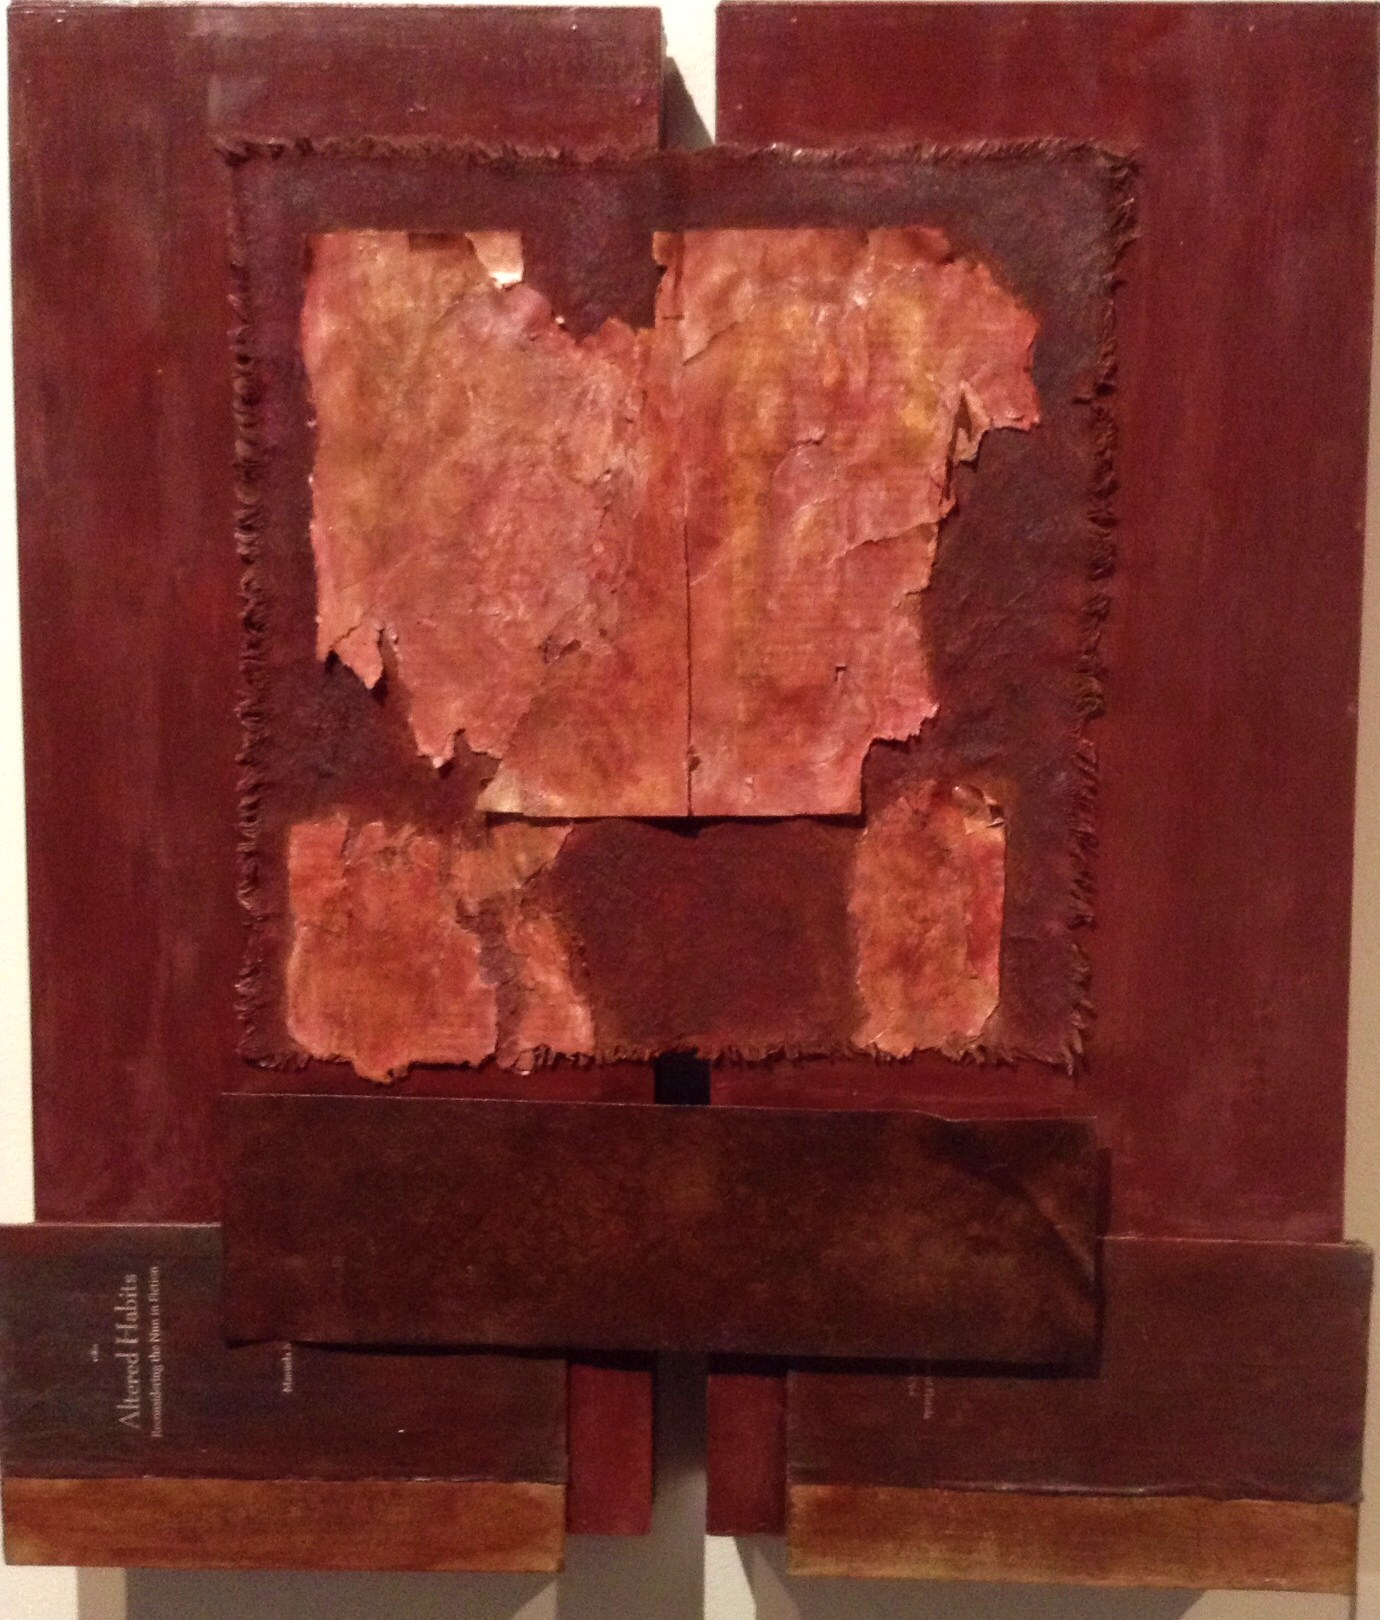 Diptych with covers and metal, 24x22, 2013